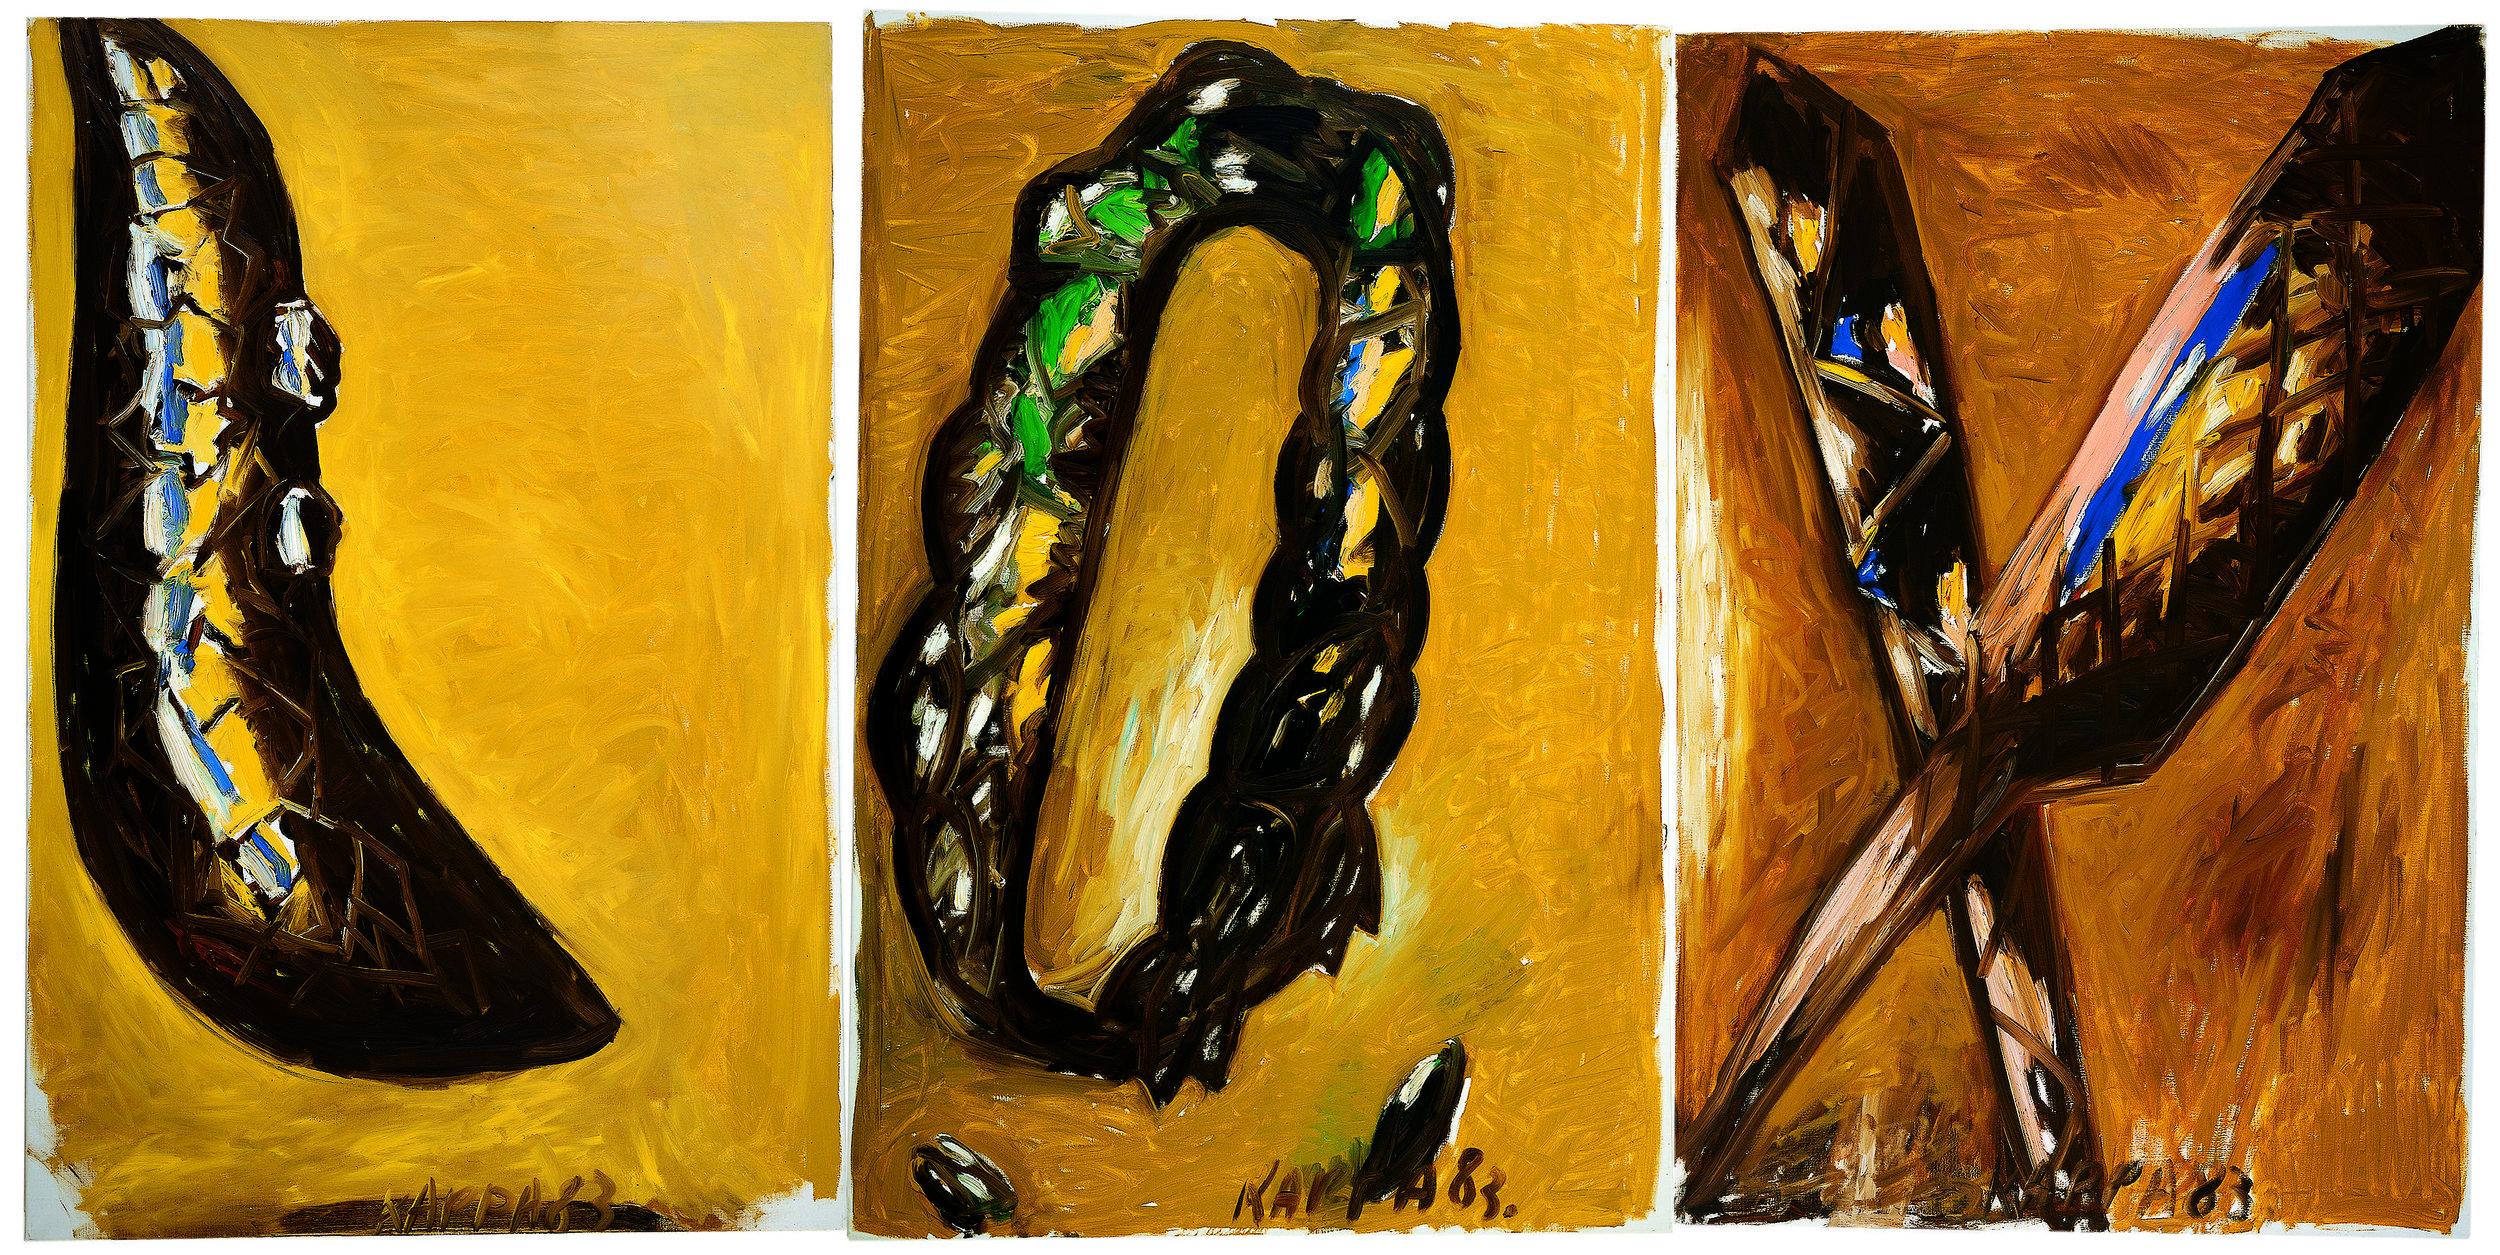 Lox , 1983, Oil on canvas, 59 x 39.37w in (150h x 100w cm each) triptych, Private collection